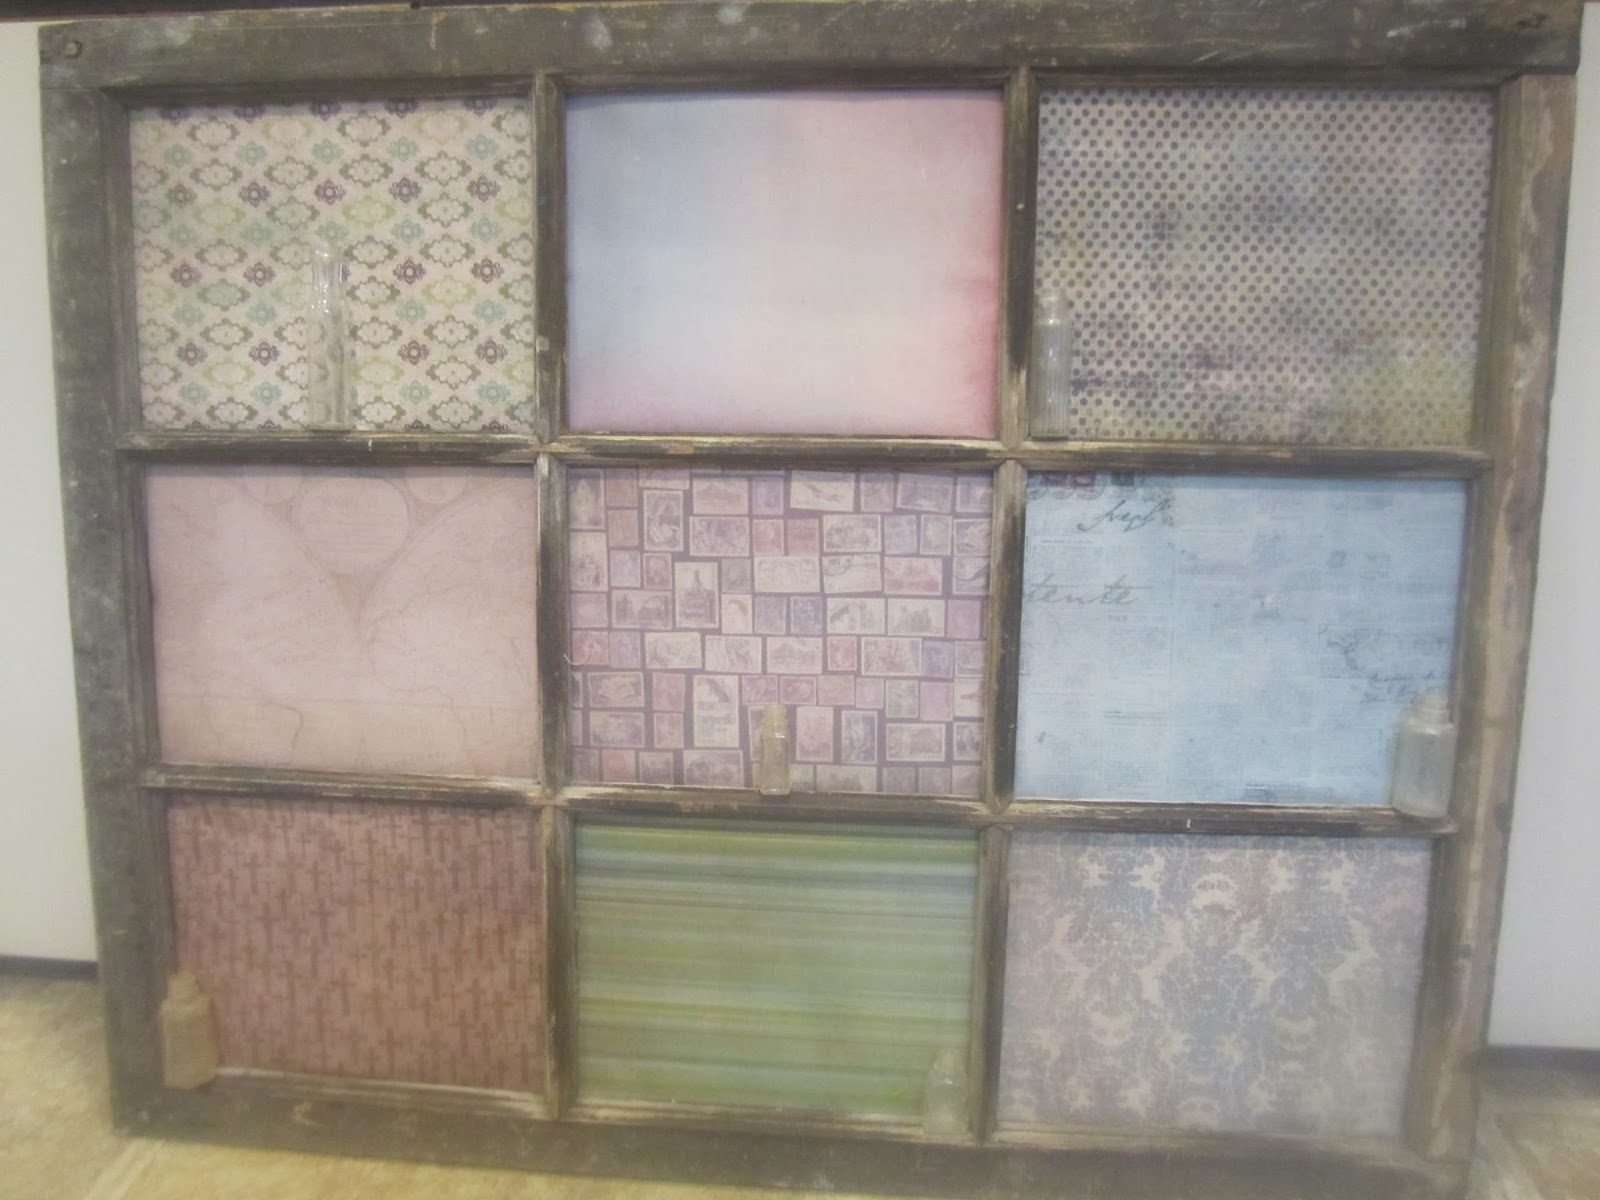 Successful Secrets: DIY Decorated Old Wooden Window